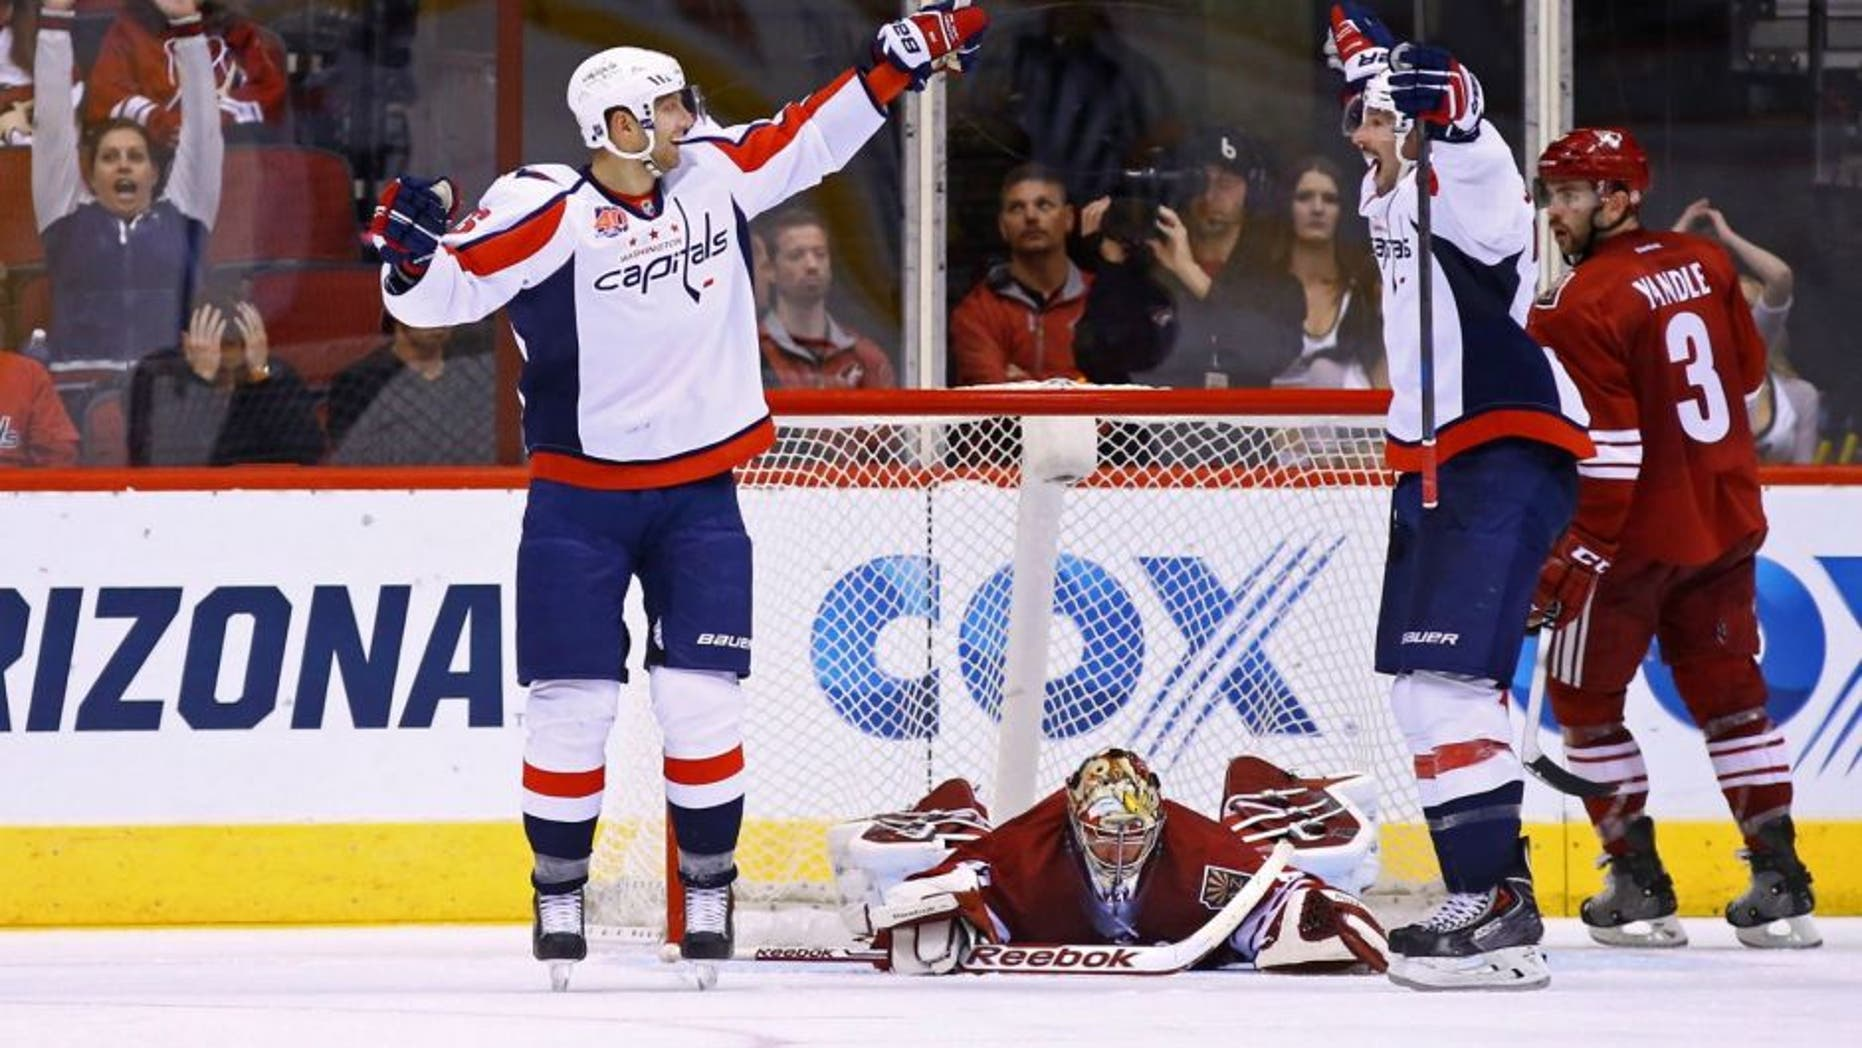 Nov 18, 2014; Glendale, AZ, USA; Washington Capitals right wing Eric Fehr (left) celebrates with right wing Troy Brouwer (right) after scoring the winning goal against Arizona Coyotes goaltender Mike Smith in overtime at Gila River Arena. The Capitals defeated the Coyotes 2-1 in overtime. Mandatory Credit: Mark J. Rebilas-USA TODAY Sports